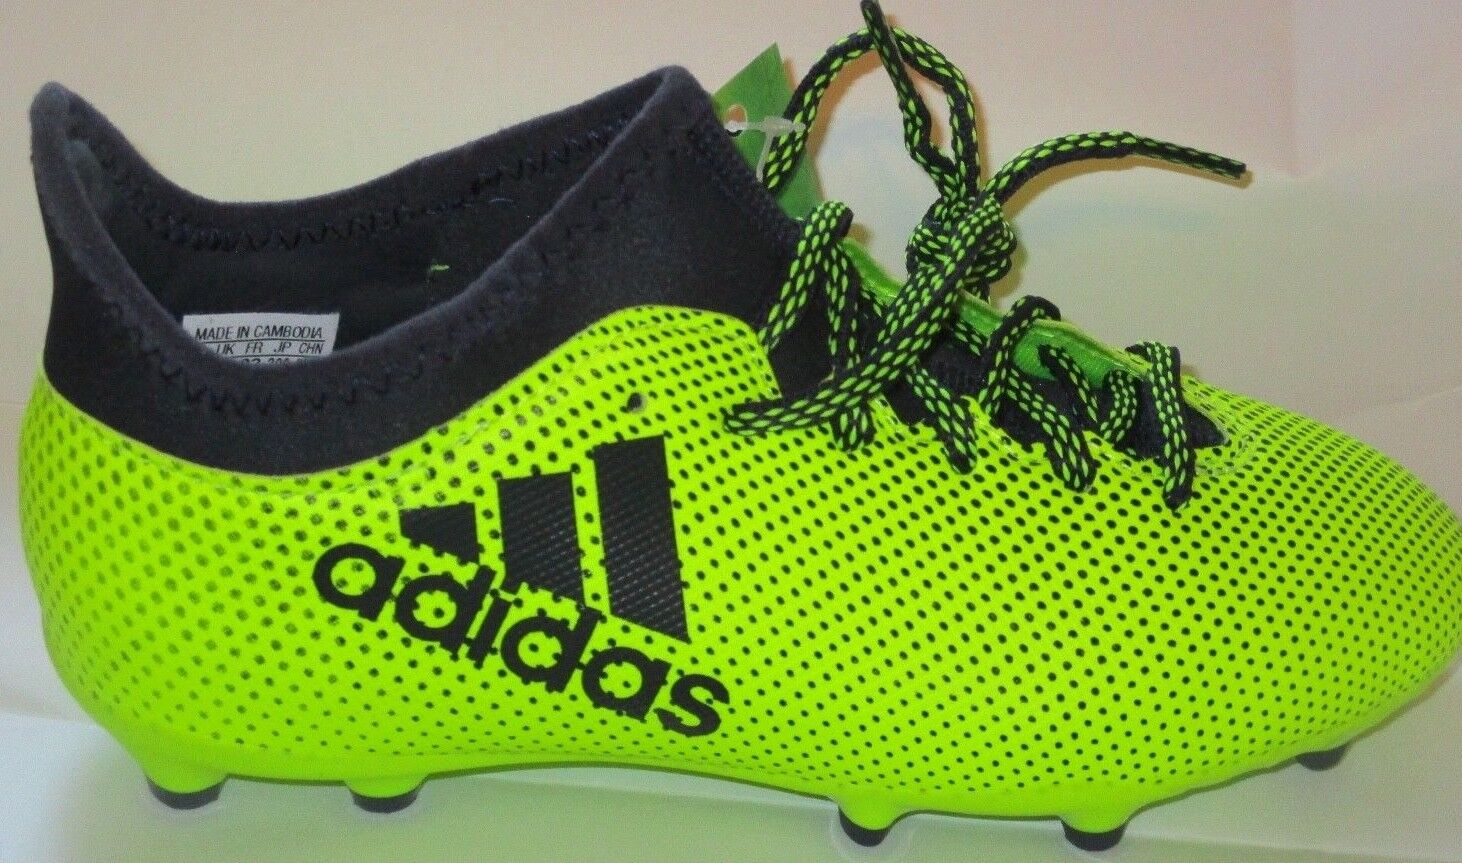 BOY'S ADIDAS X TANGO 17.3 FG SOCCER SHOES CLEATS S82369 SIZE 1.5Y